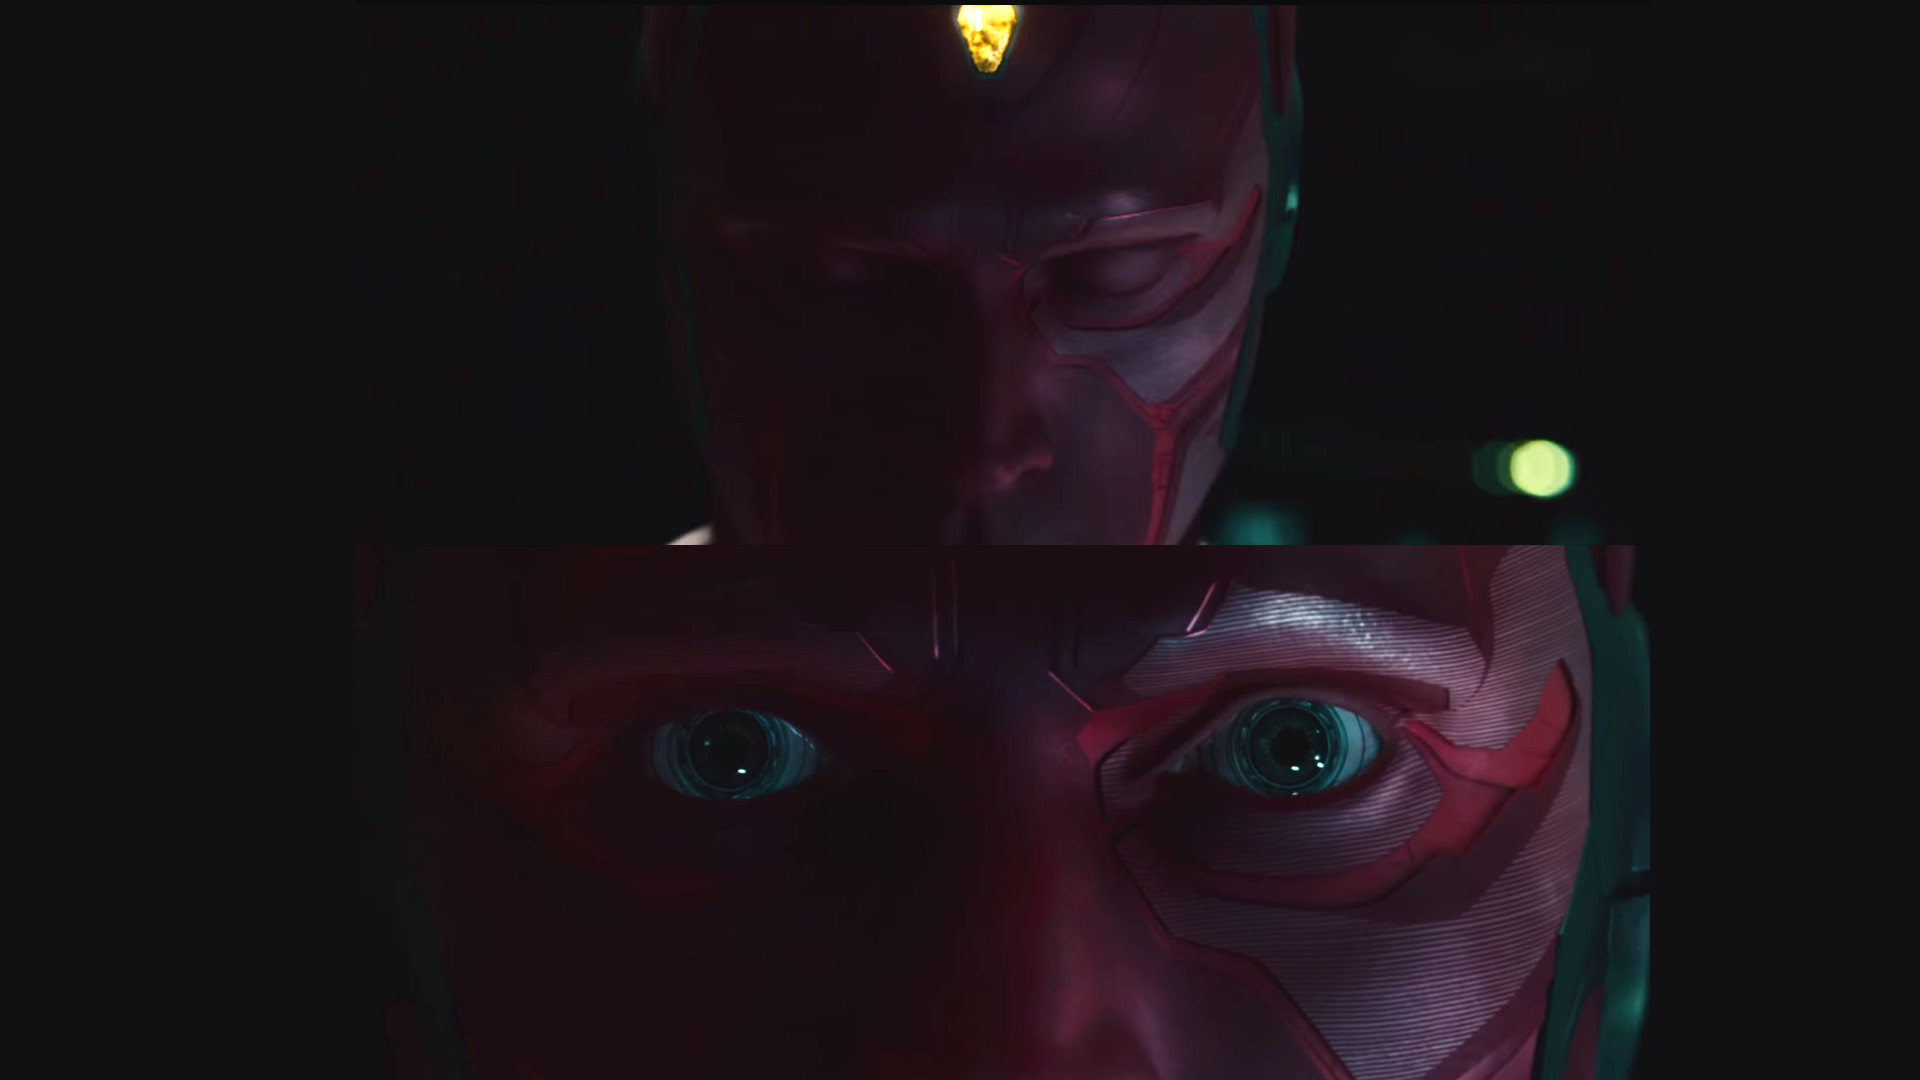 the vision marvel wallpaper 69 images